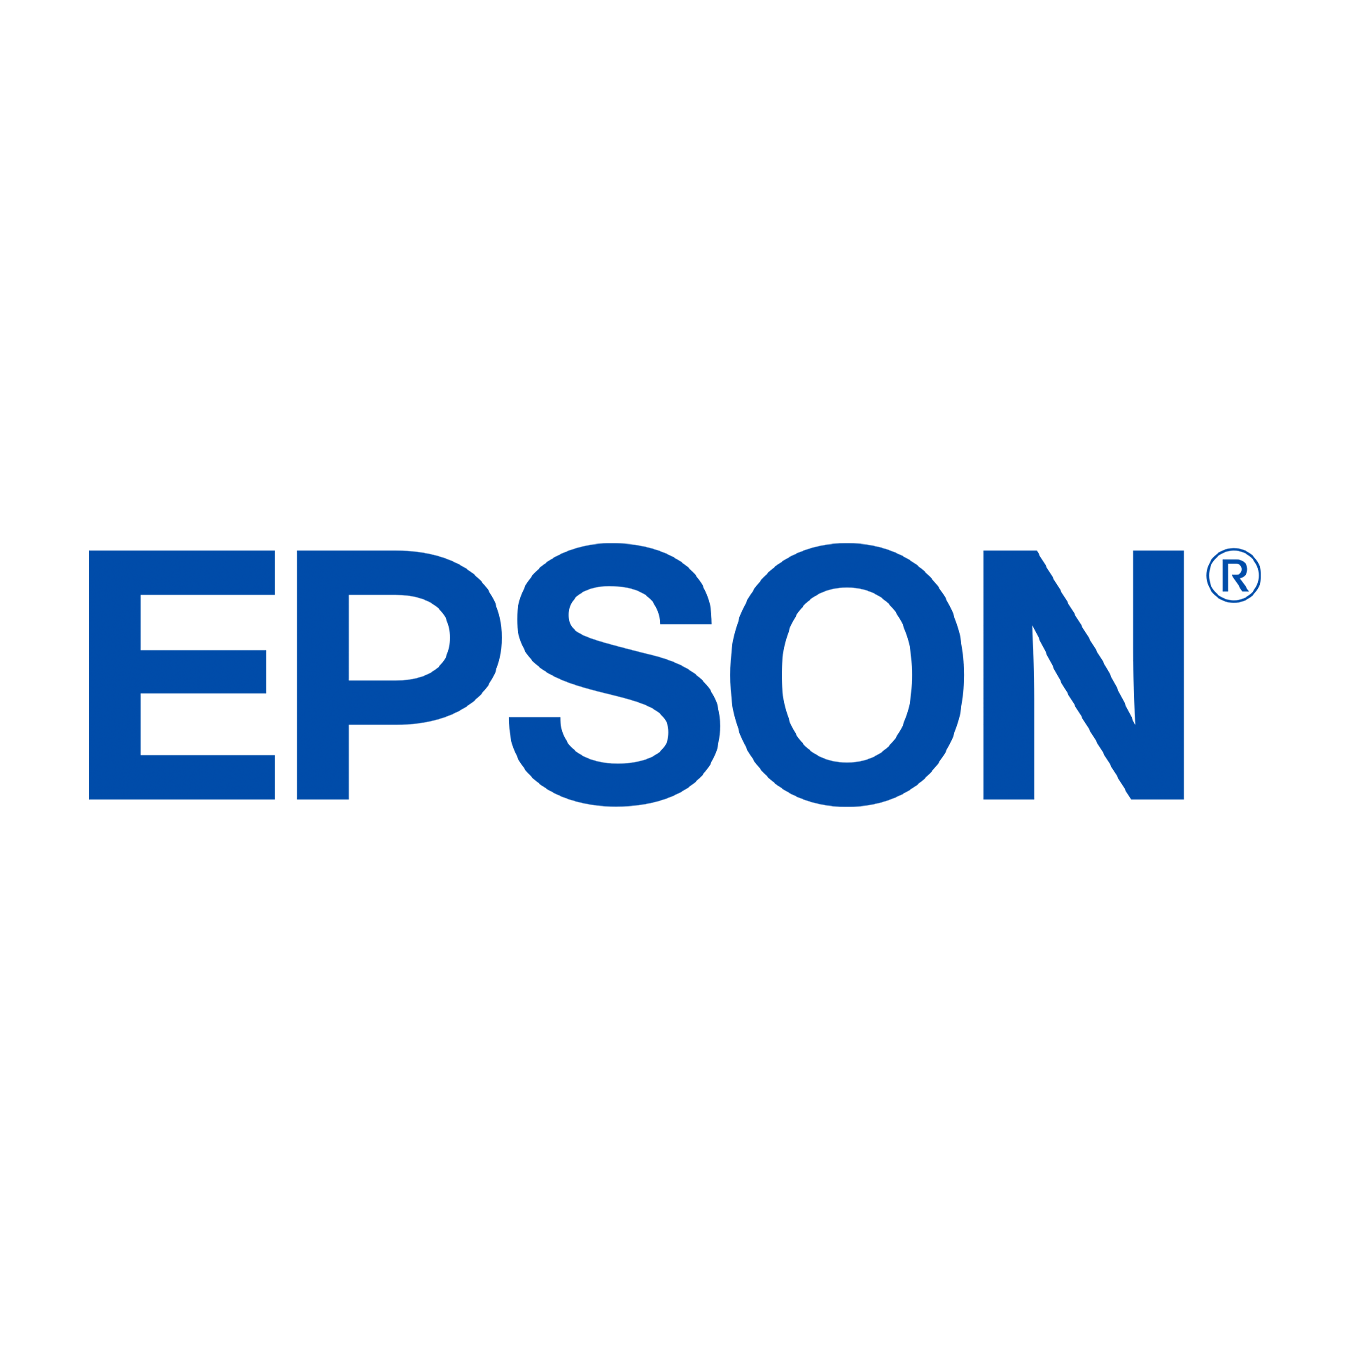 epson white.png